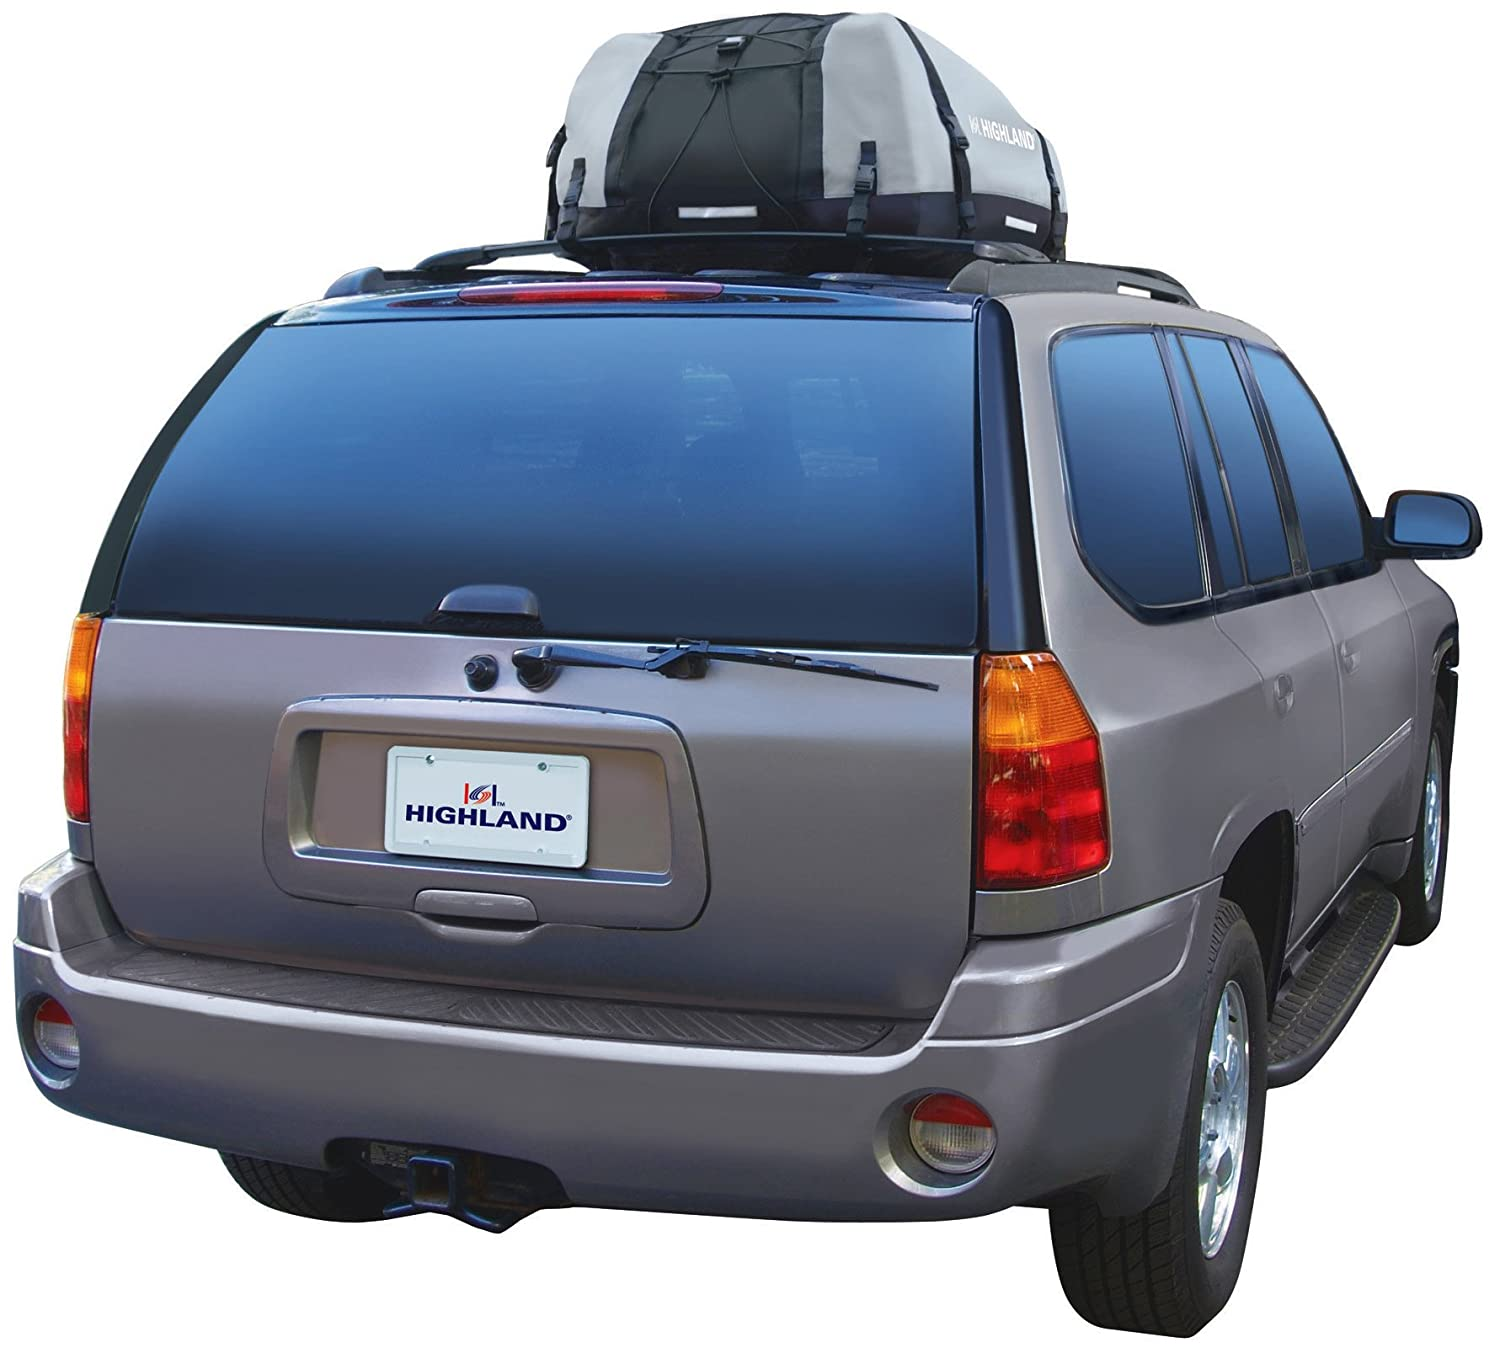 Highland 103980 Car Top Bag Roof Rack Storage Expandable